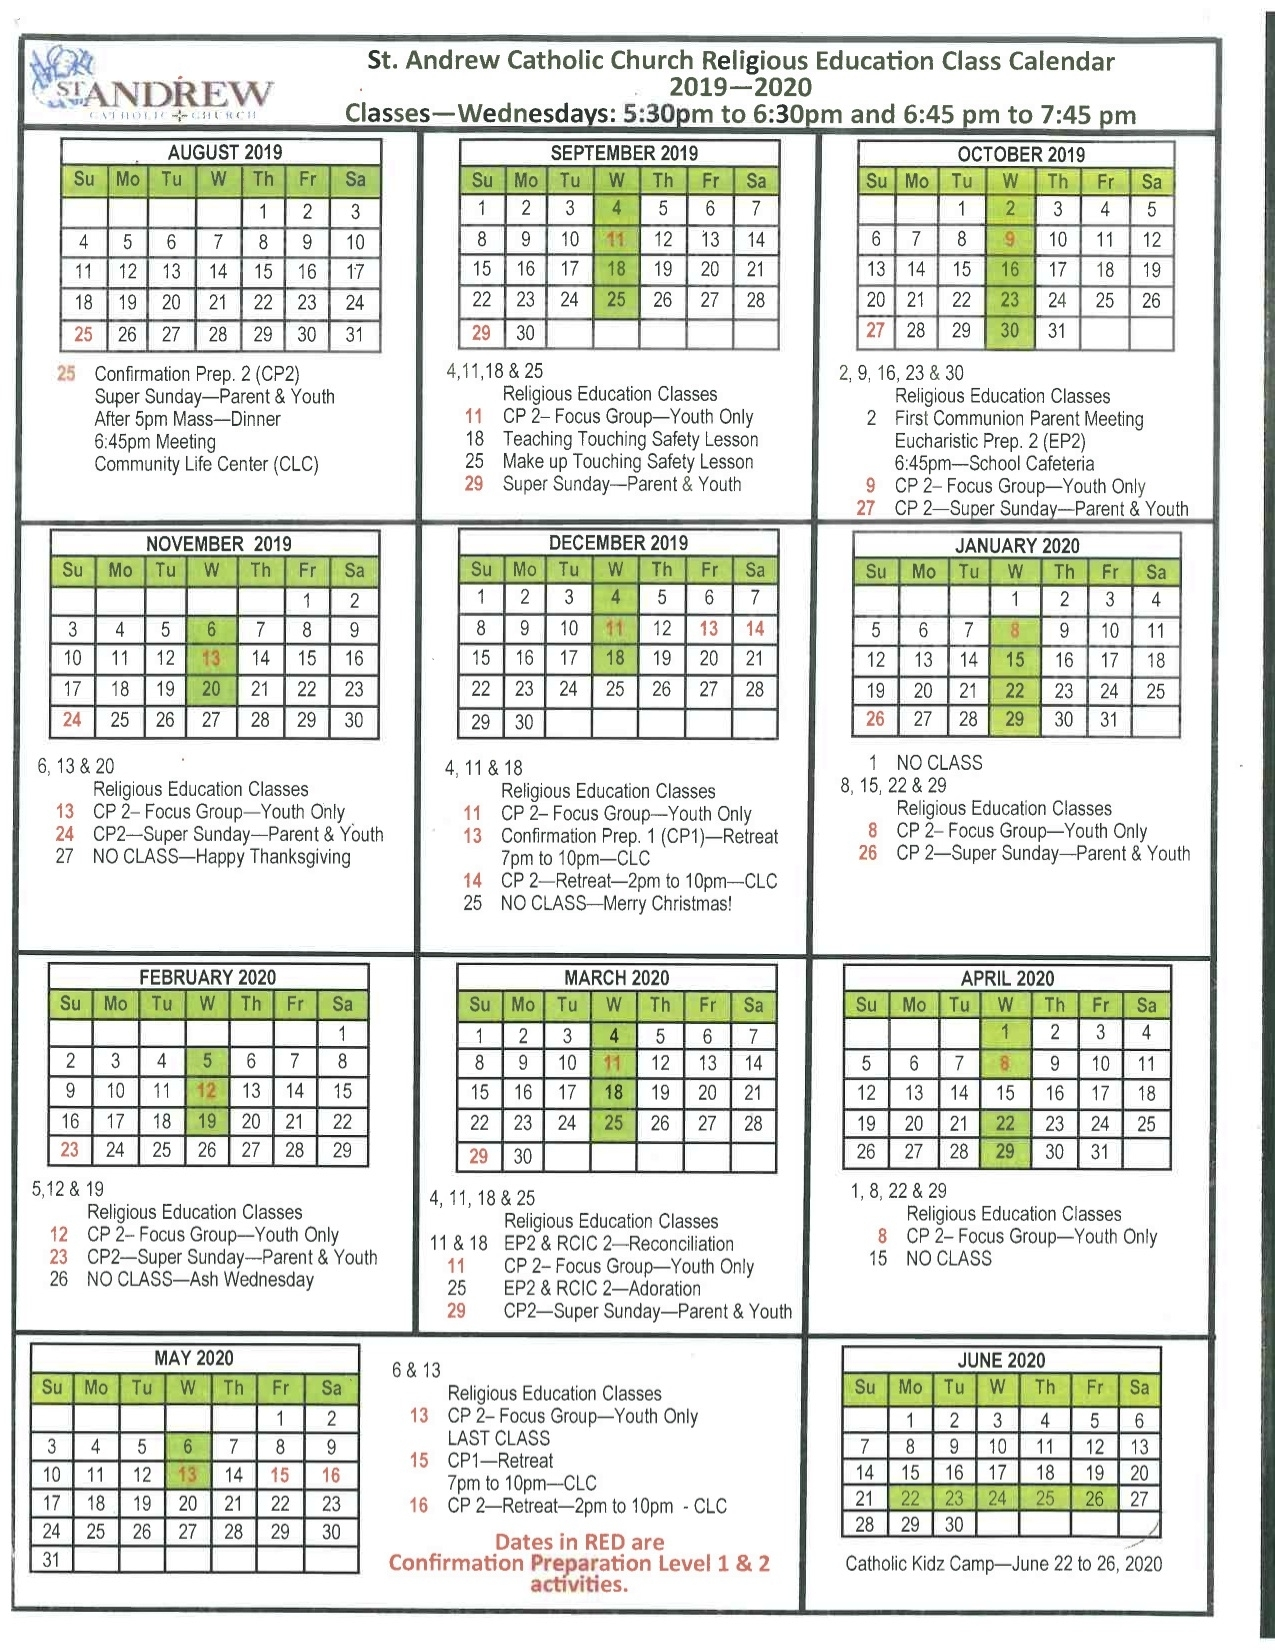 Liturgical Calendar - St. Andrew Catholic School with regard to 2020 Catholic Liturgical Calendar Activities